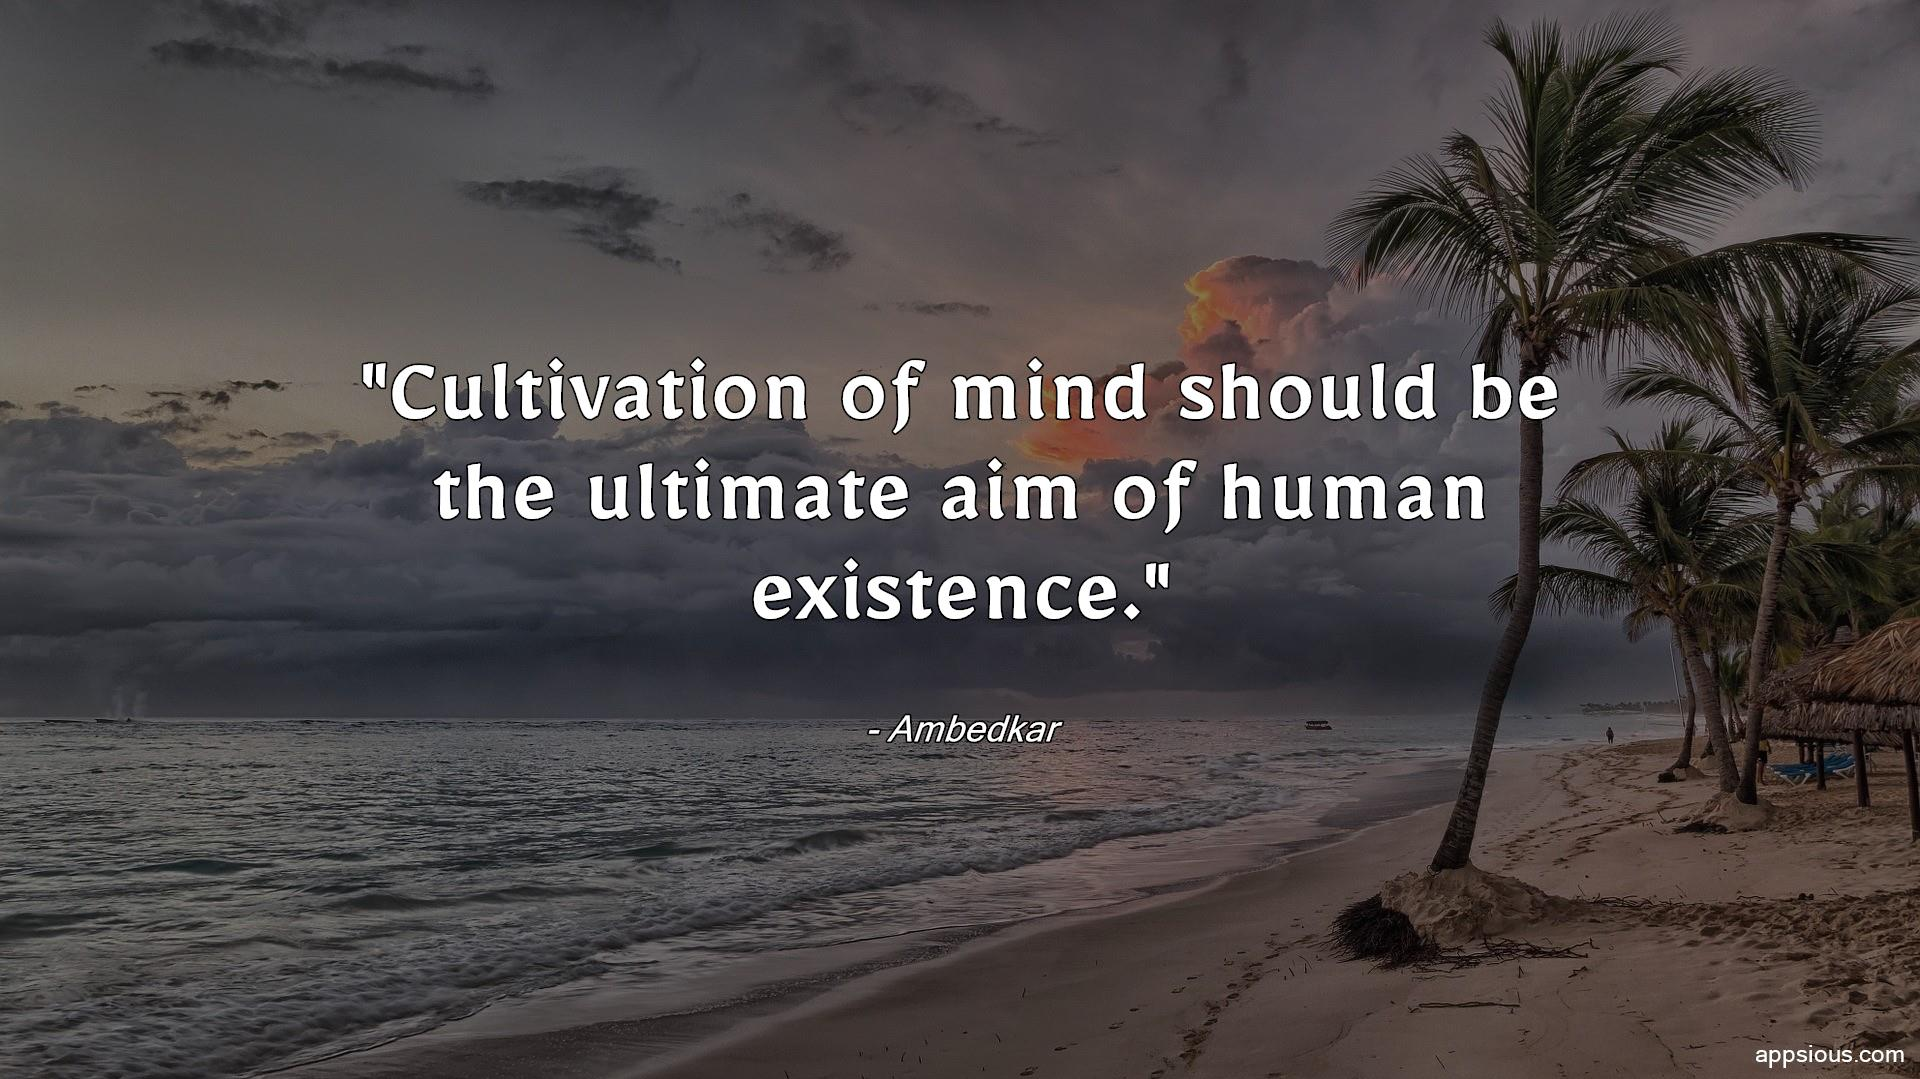 Cultivation of mind should be the ultimate aim of human existence.